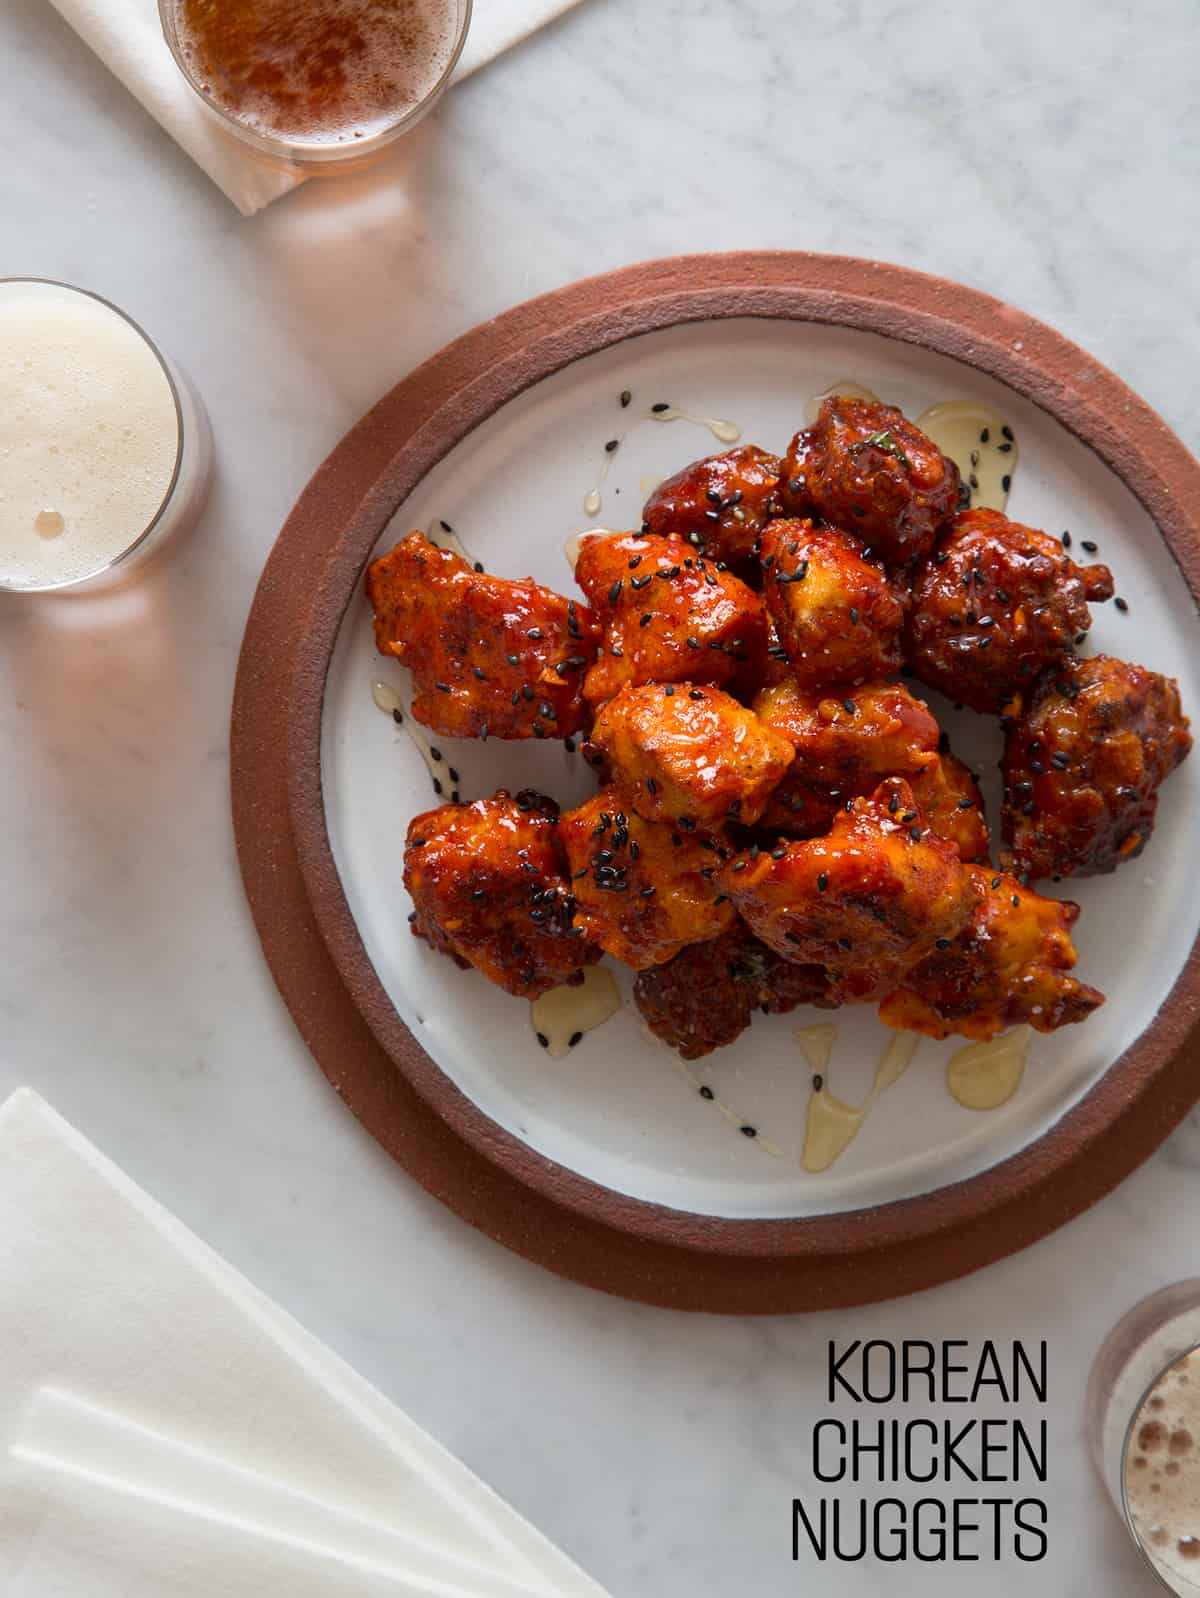 Korean Chicken Nuggets | Spoon Fork Bacon